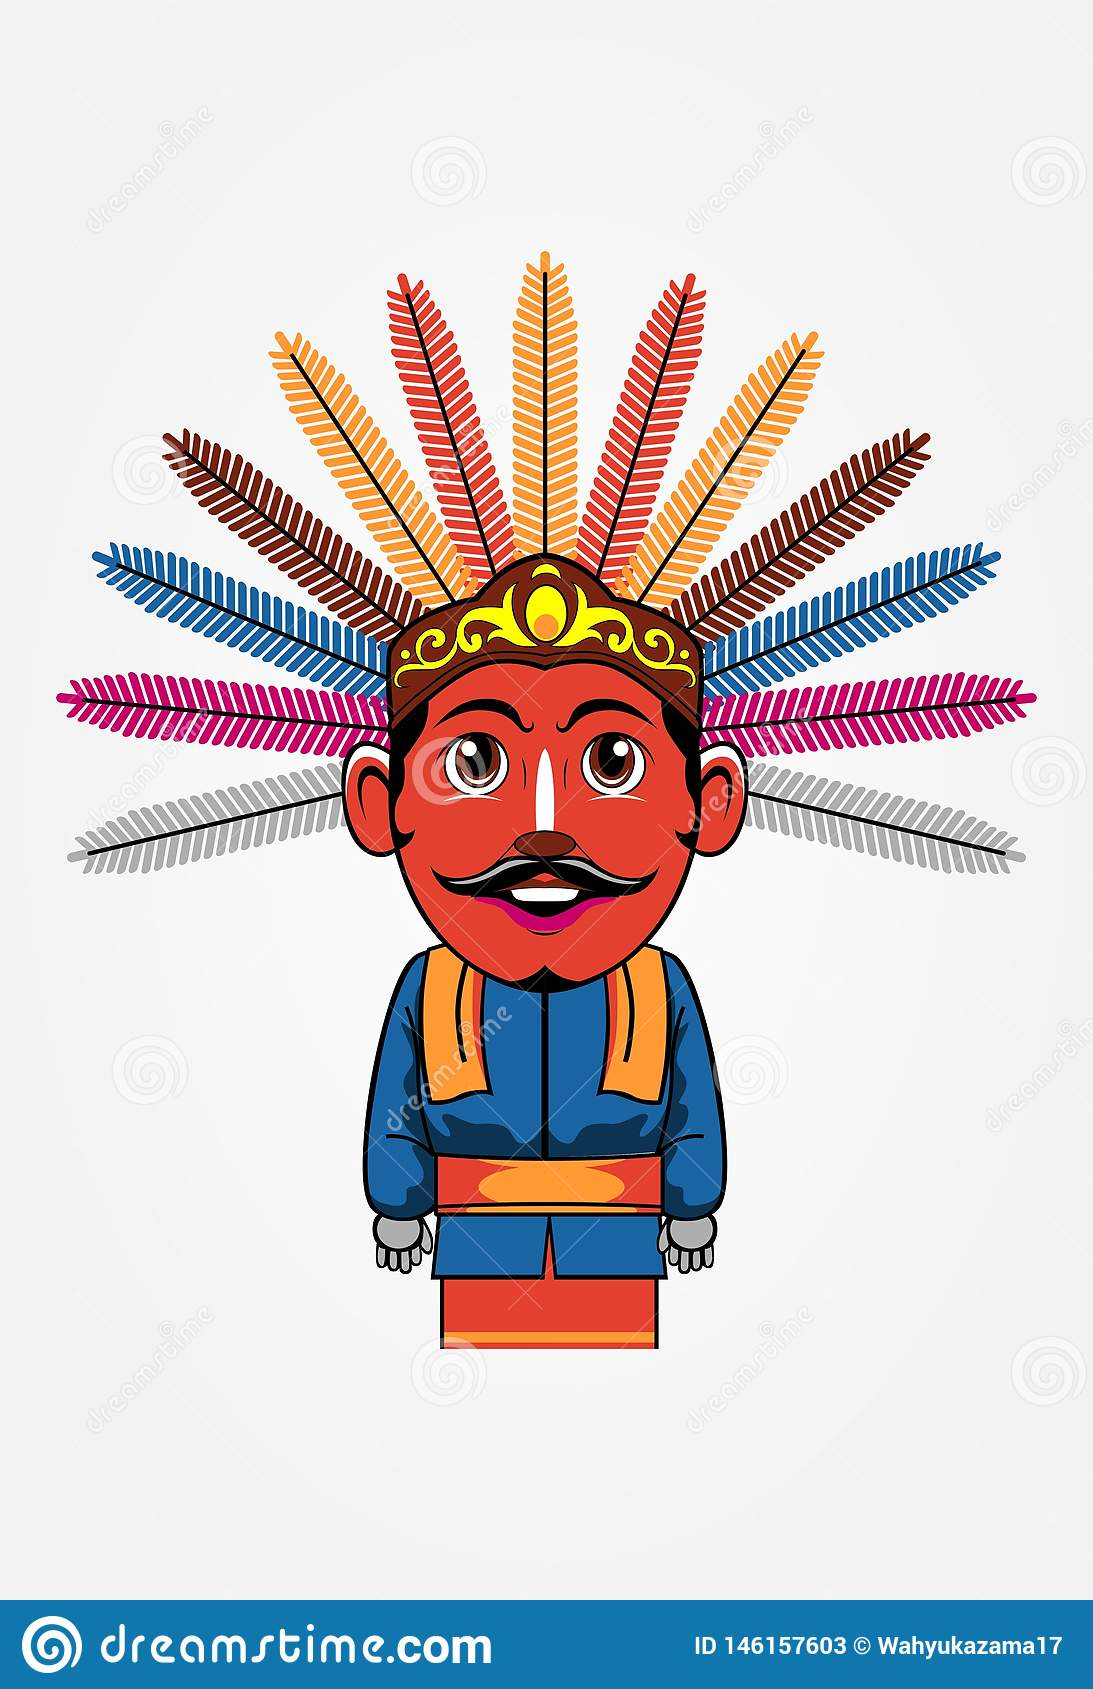 Ondel Ondel Betawi Kartun : ondel, betawi, kartun, Ondel, Stock, Illustrations, Illustrations,, Vectors, Clipart, Dreamstime